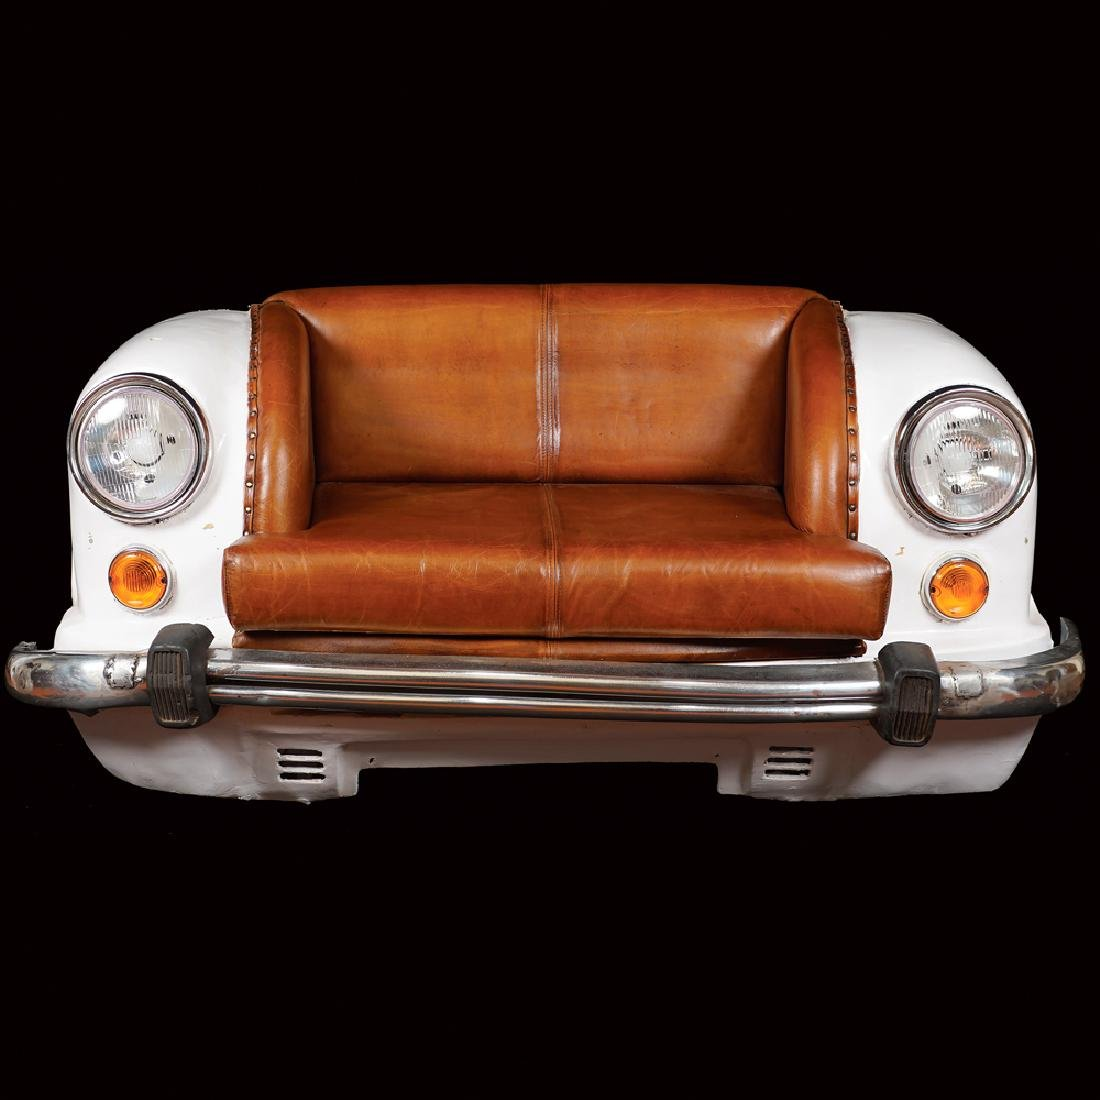 Fiat 850 sofa 20th century 75x150x80 cm.